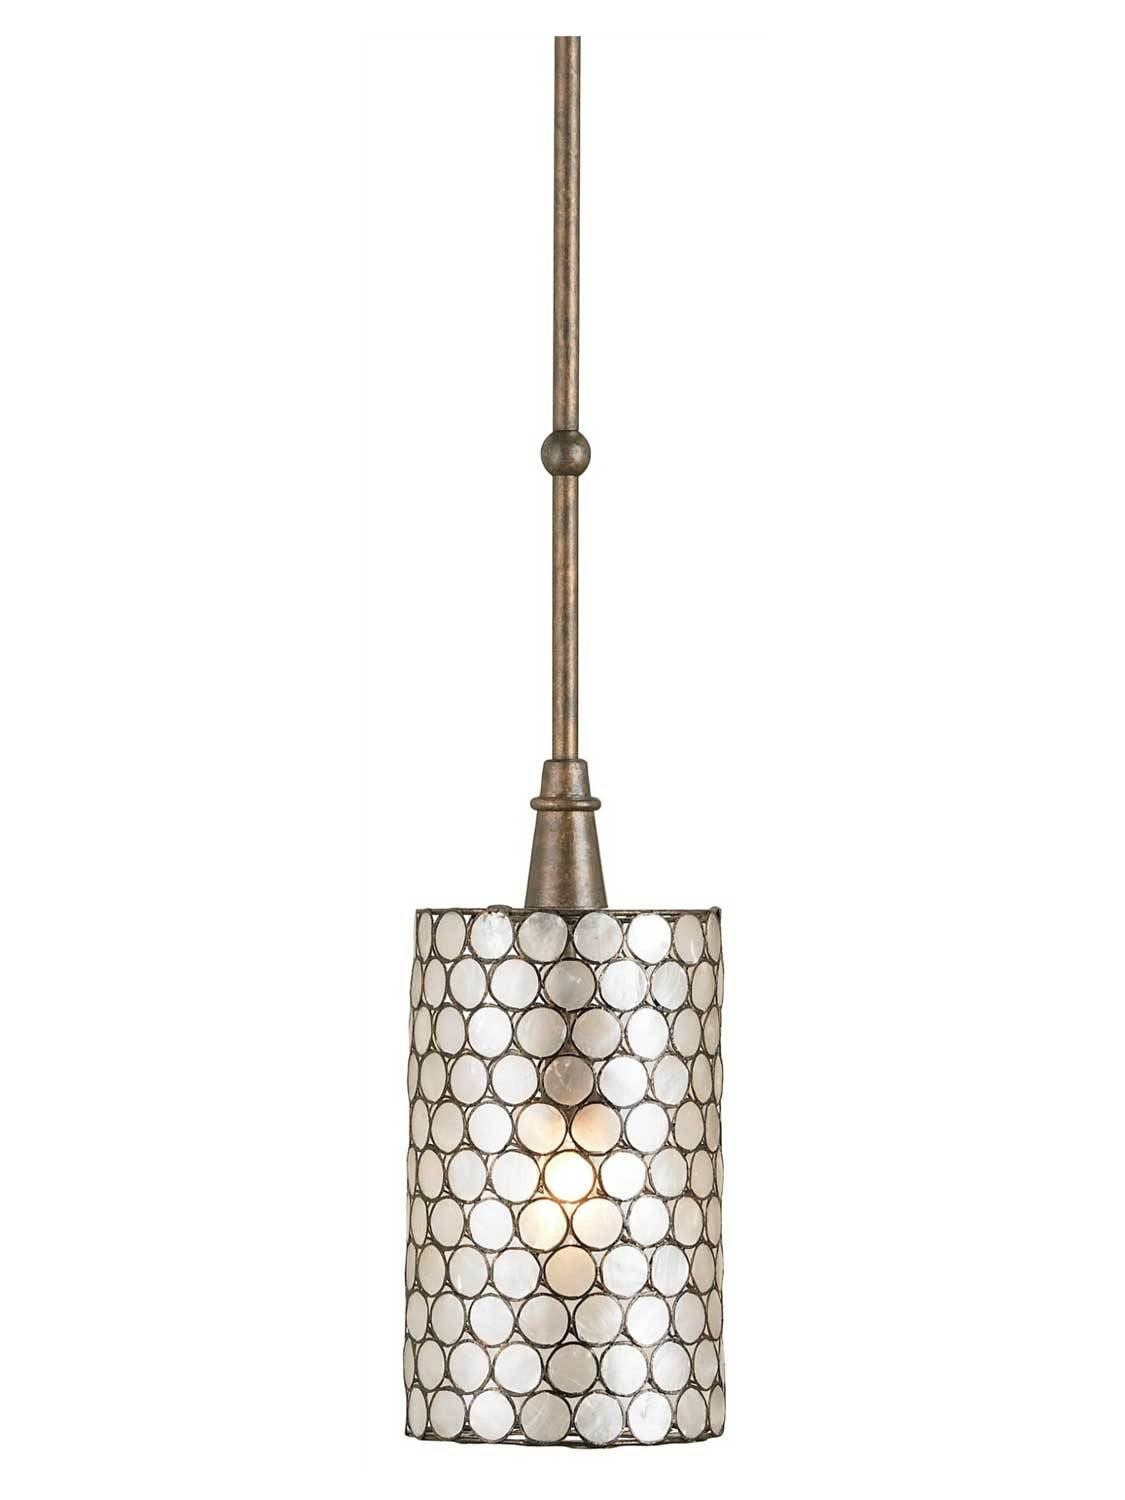 Stunning Shell Pendant Light For Interior Decor Concept Capiz throughout Shell Light Shades Pendants (Image 14 of 15)